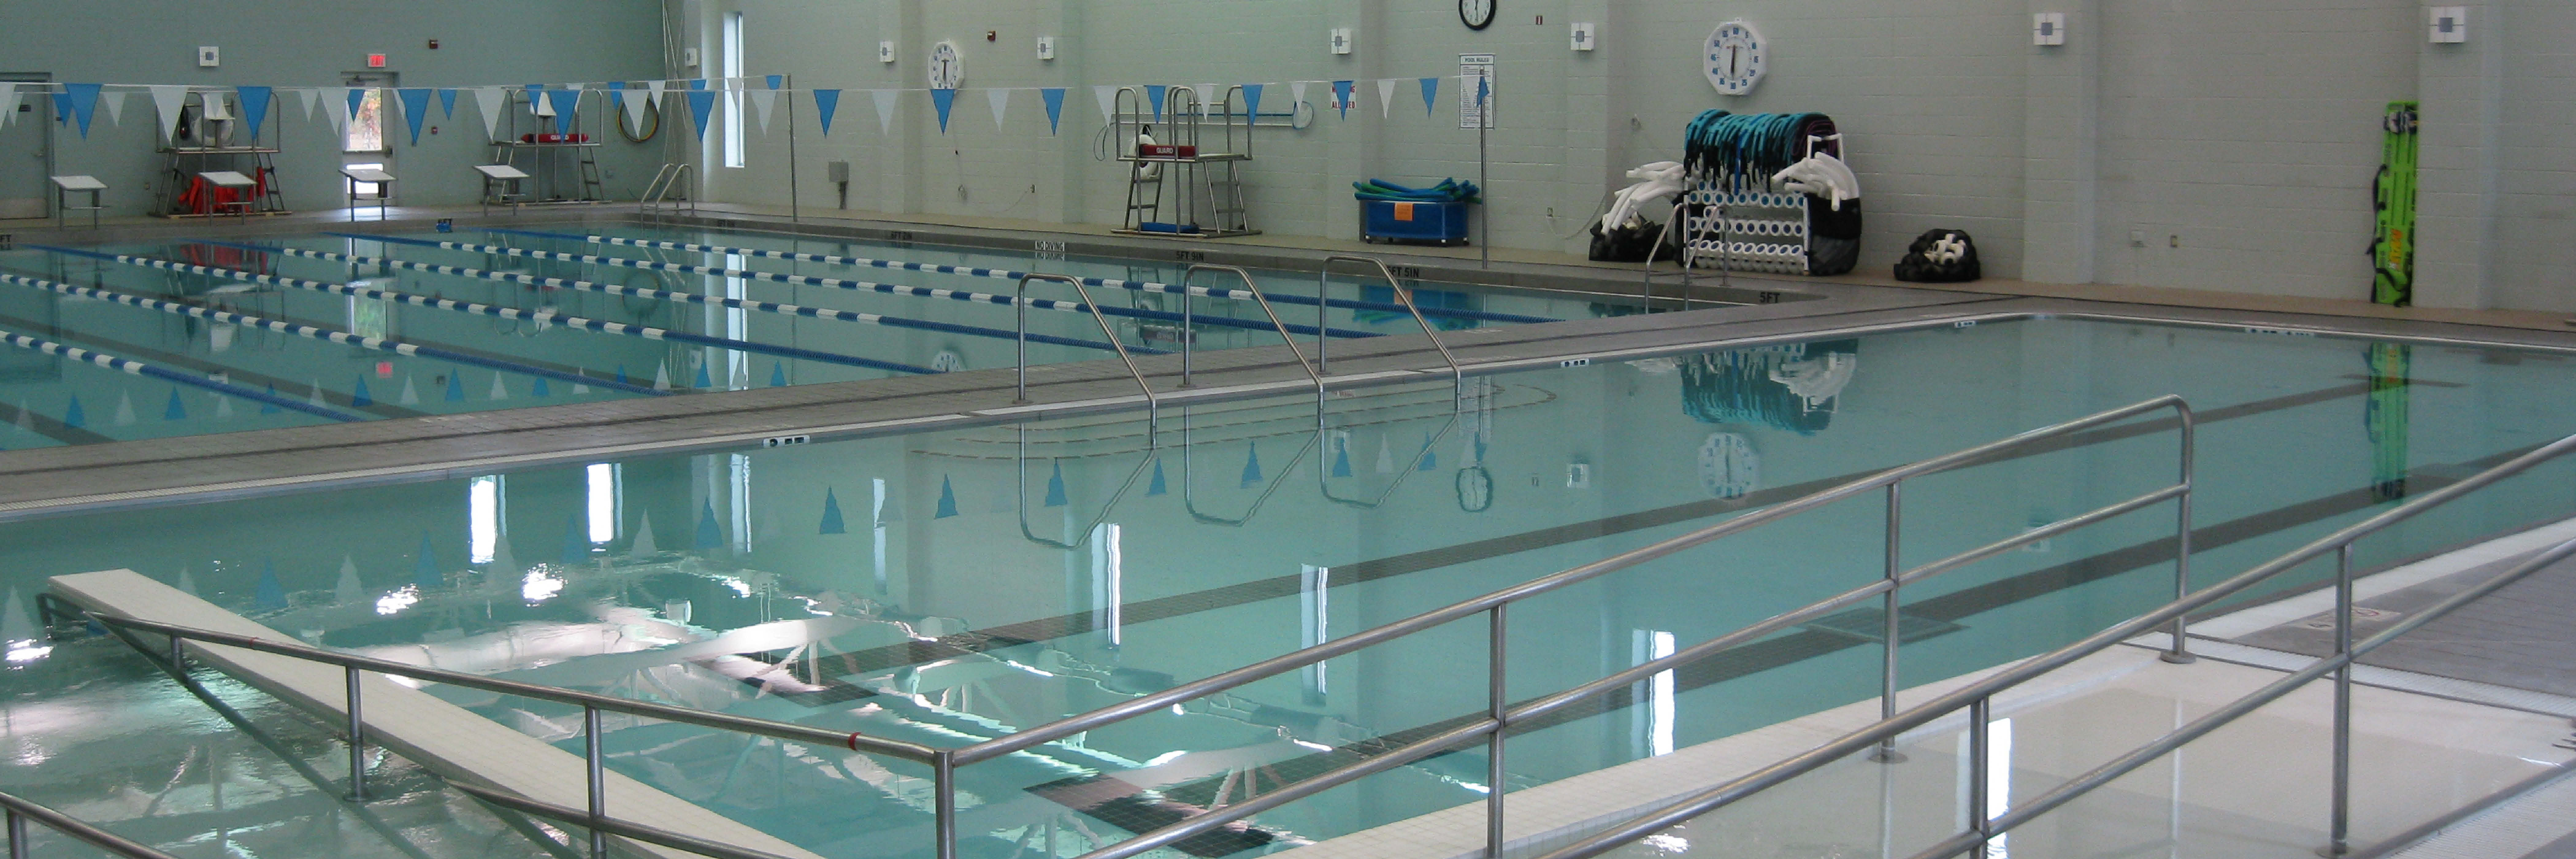 Ocean Community College Athletics Pool